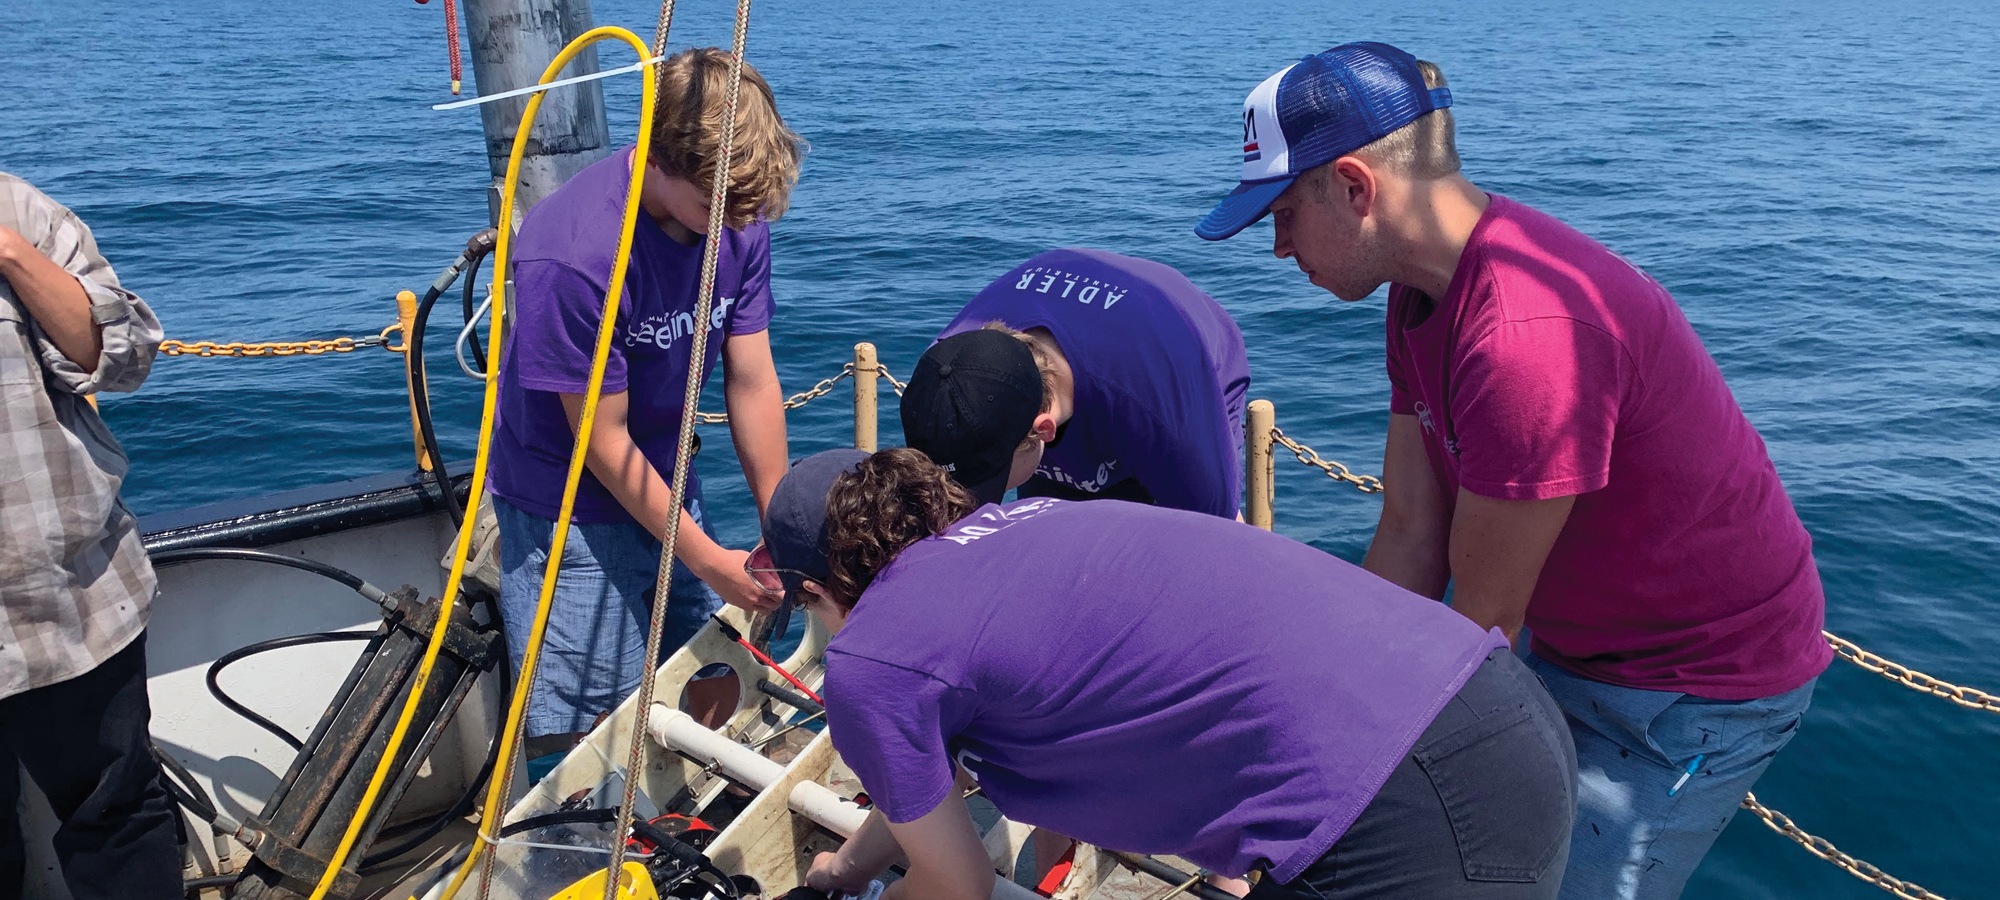 Aquarius Project students with the ROV aboard RV Neeskay